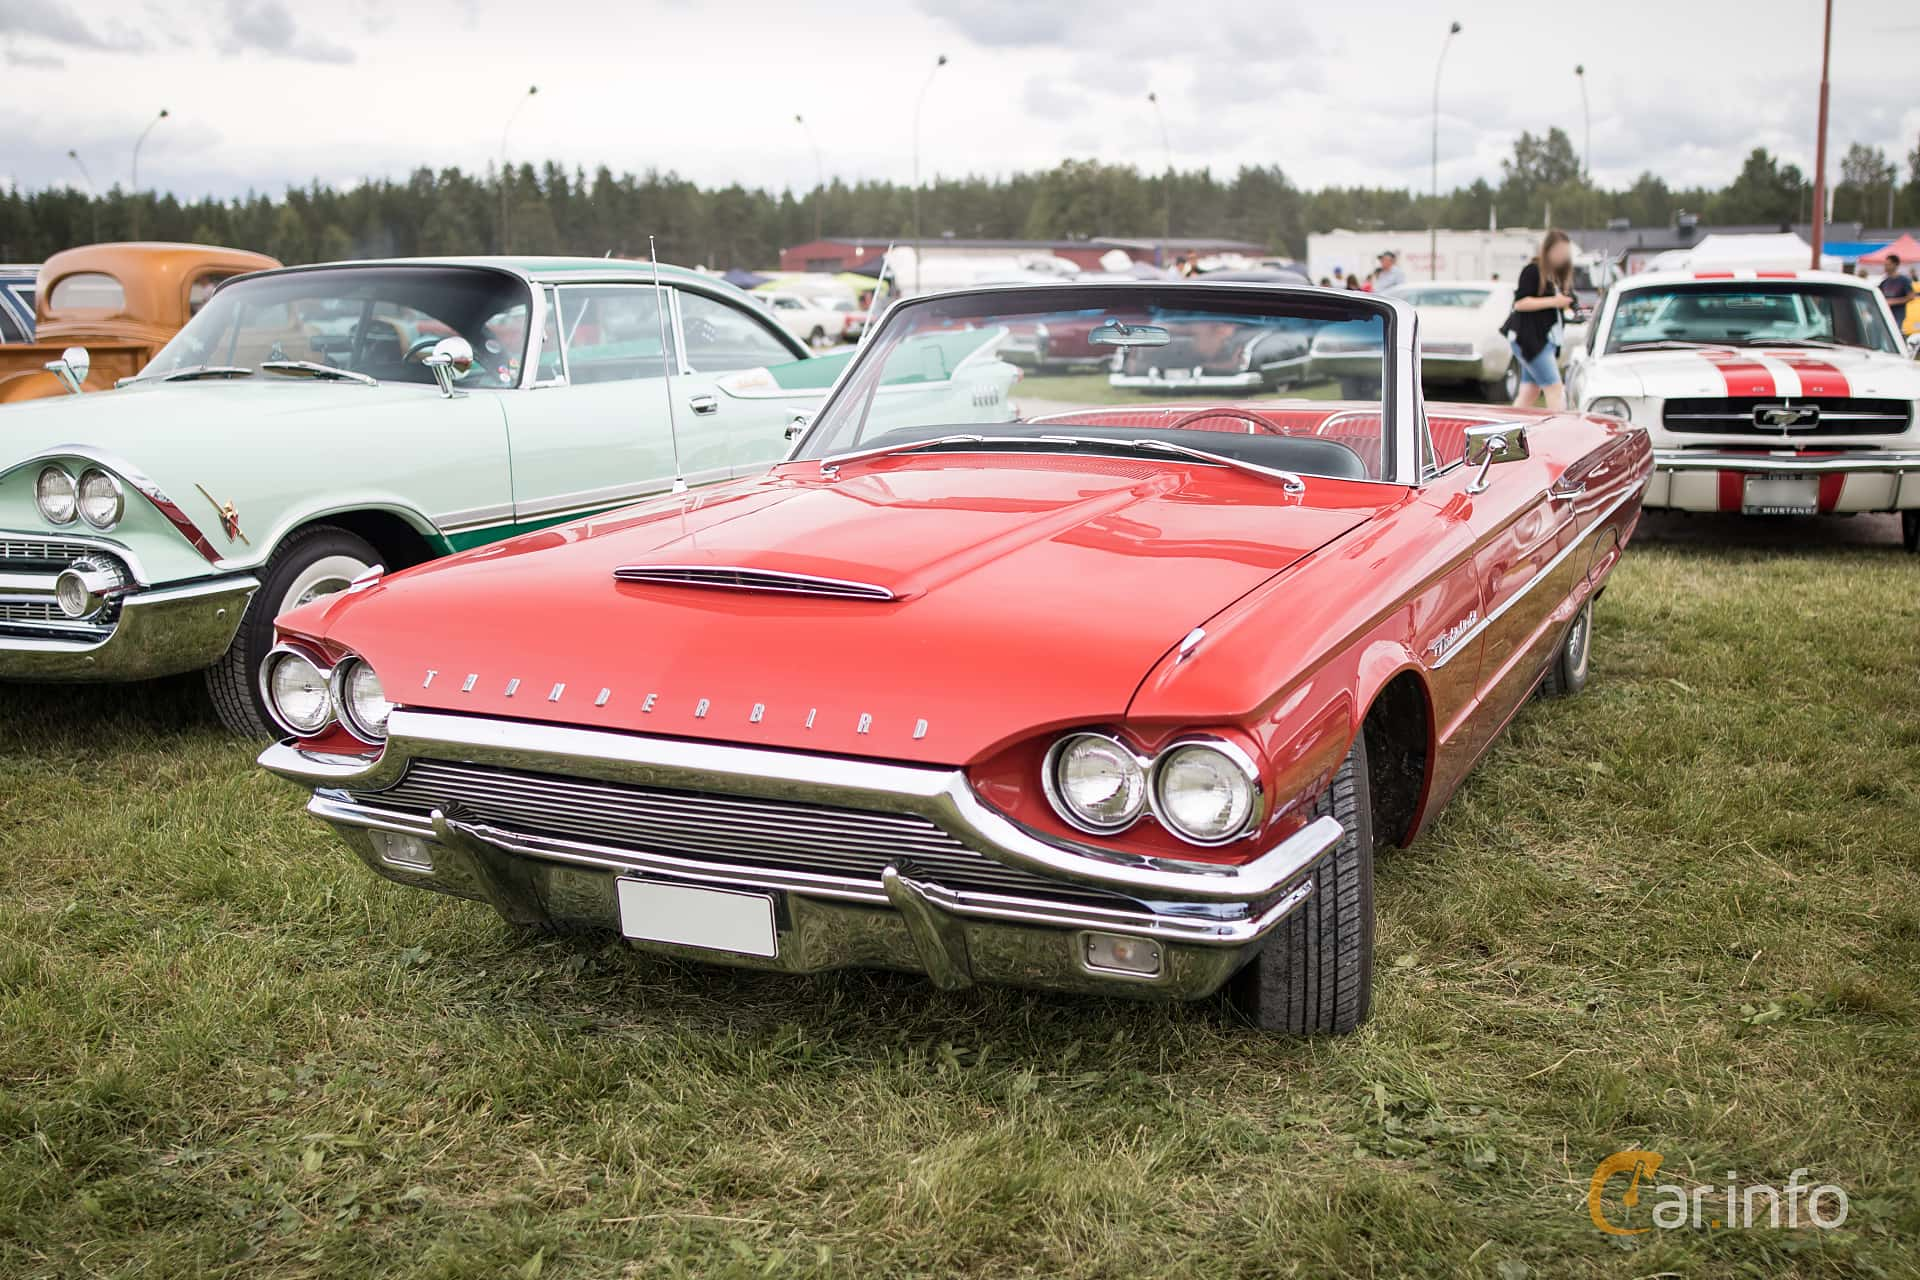 Pictures From Sebastianjohansson 1955 Buick Electra 225 Convertible